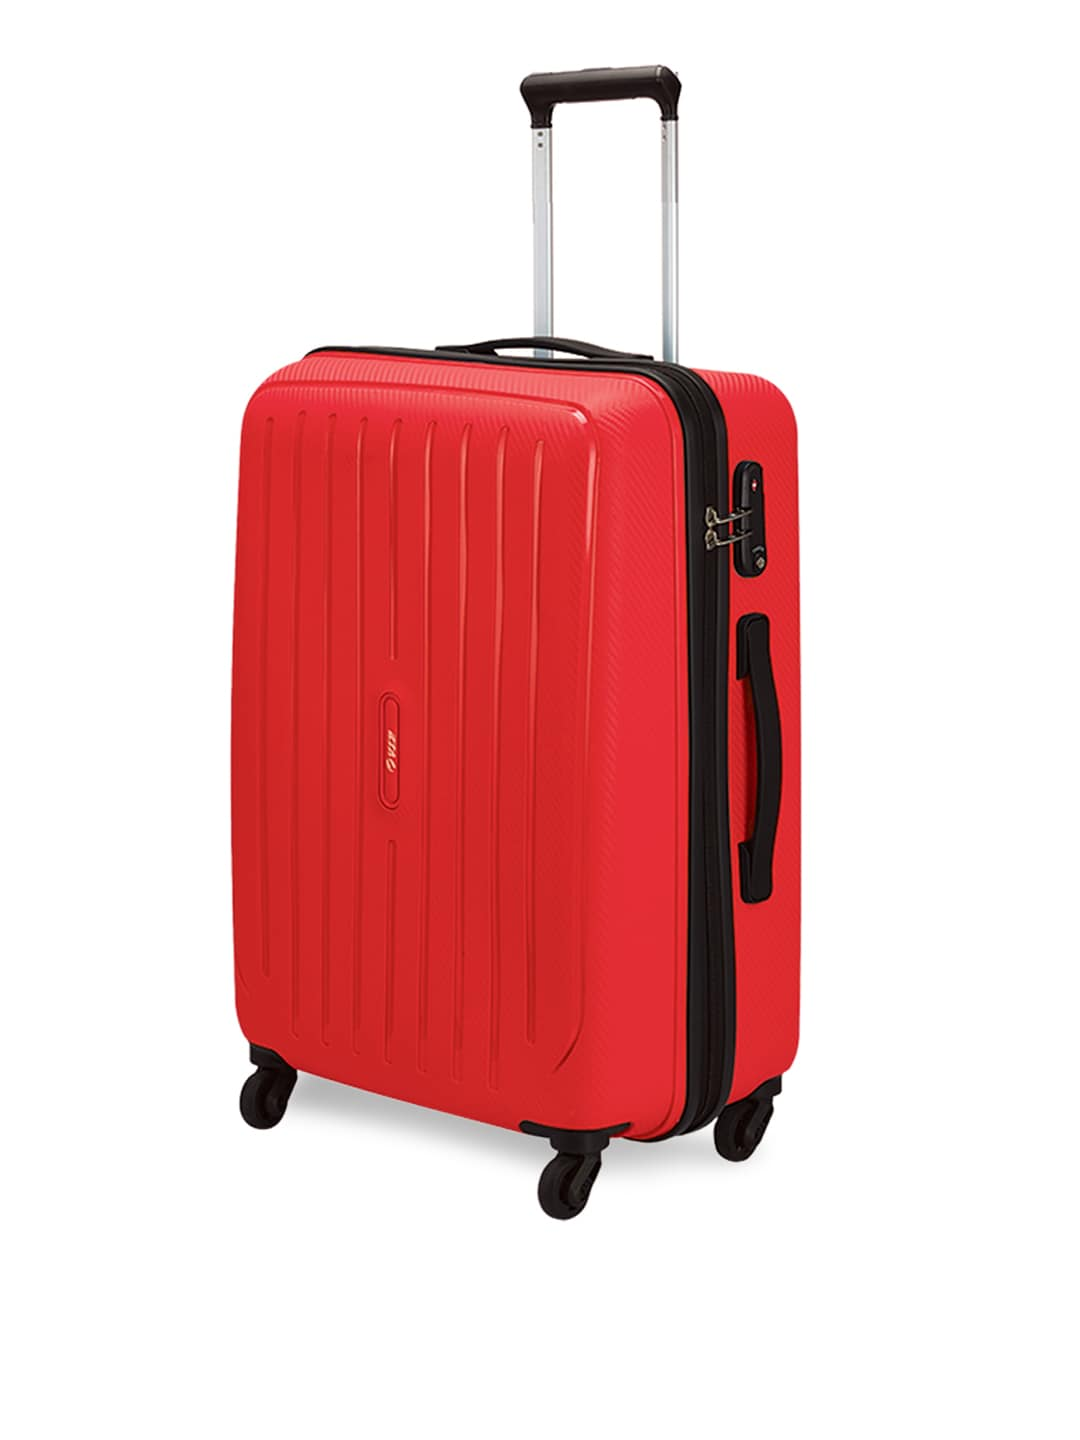 Vip Phonix55fir Unisex Red Small Trolley Suitcase Best Price In